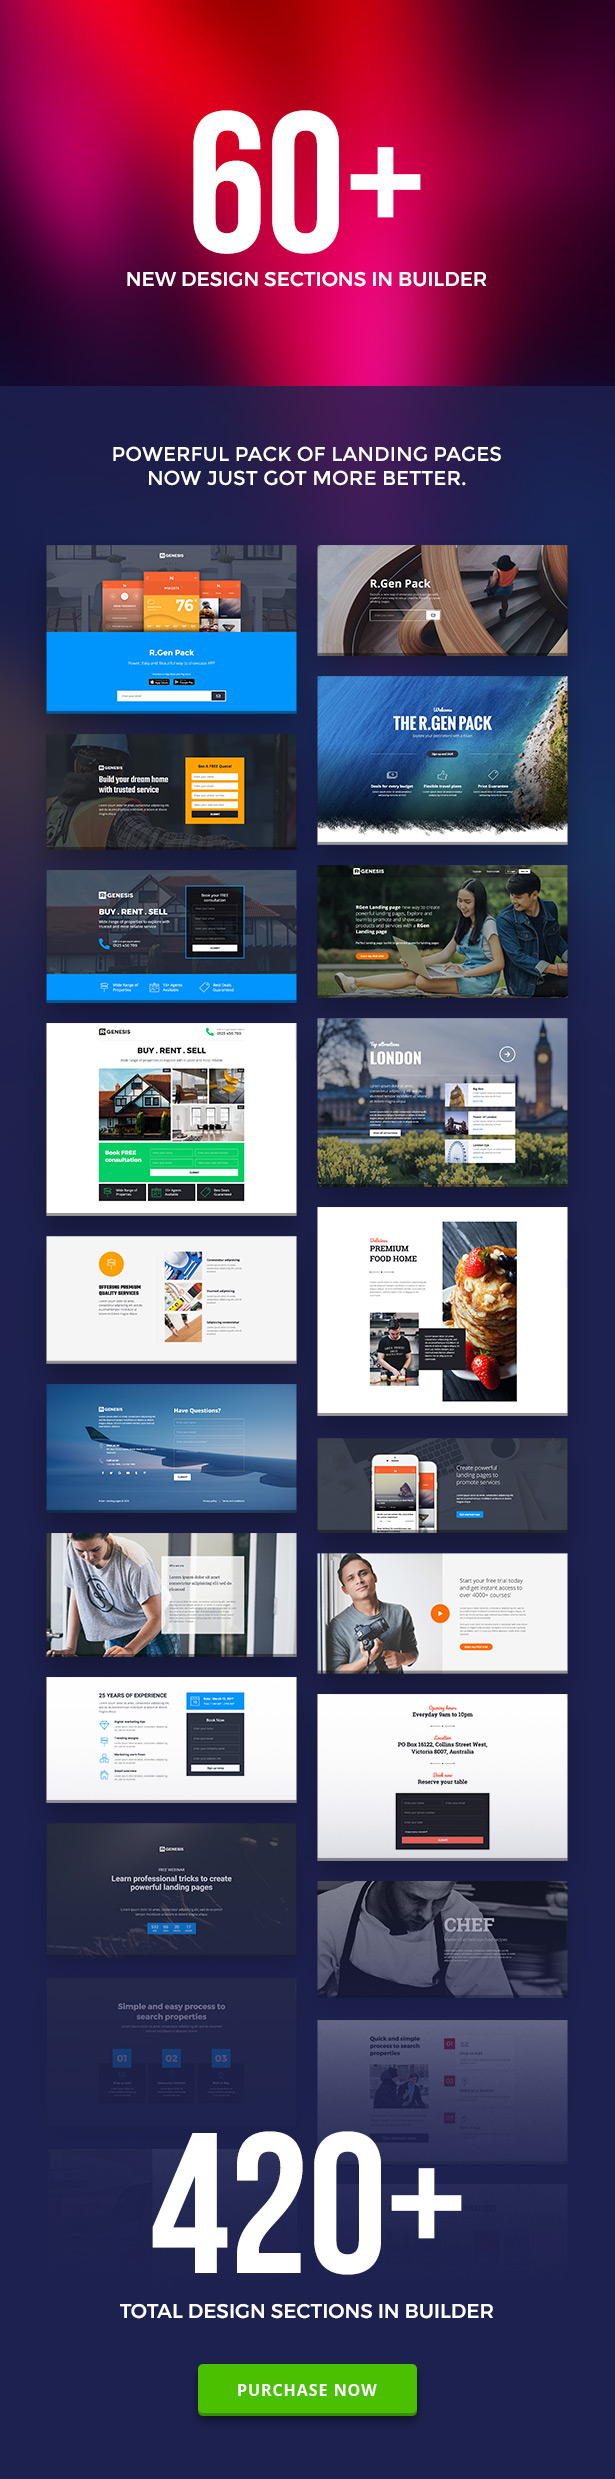 RGen | HTML Landing Pages with Builder - 4